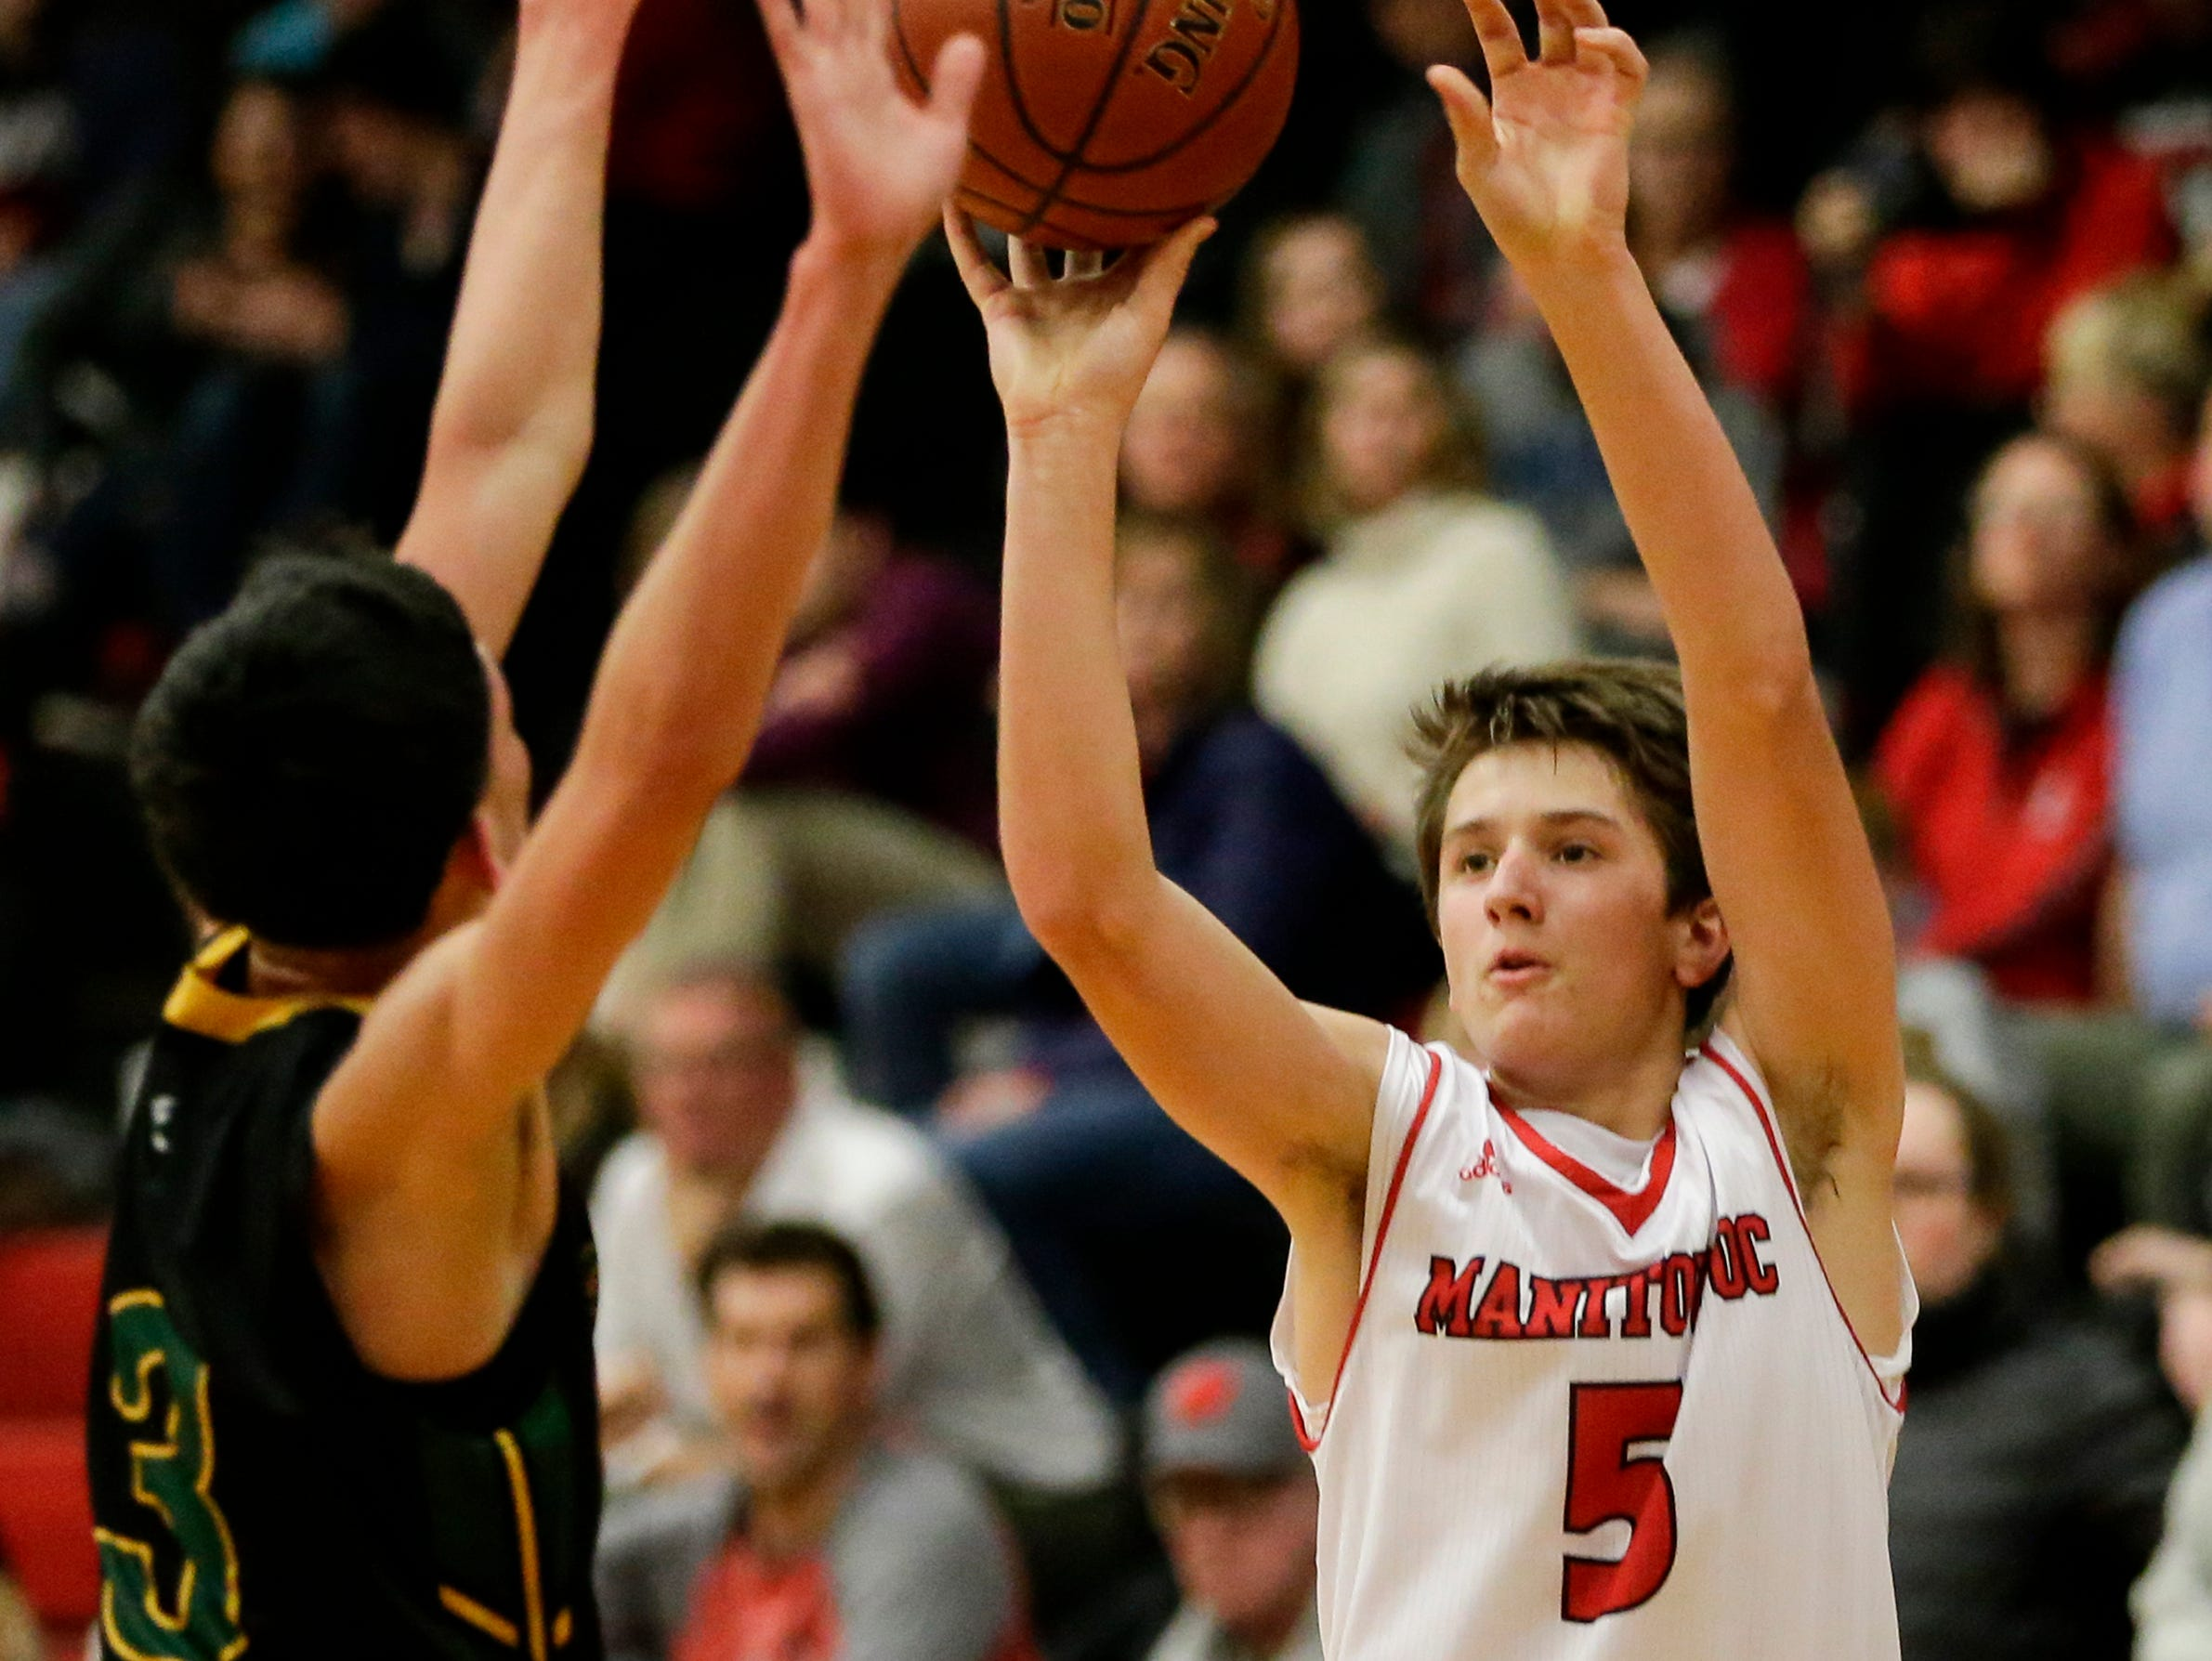 Manitowoc Lincoln's Josh Hoffman puts up a three against Green Bay Preble during boys FRCC basketball at Manitowoc Lincoln High School Friday, December 21, 2018, in Manitowoc, Wis. Joshua Clark/USA TODAY NETWORK-Wisconsin